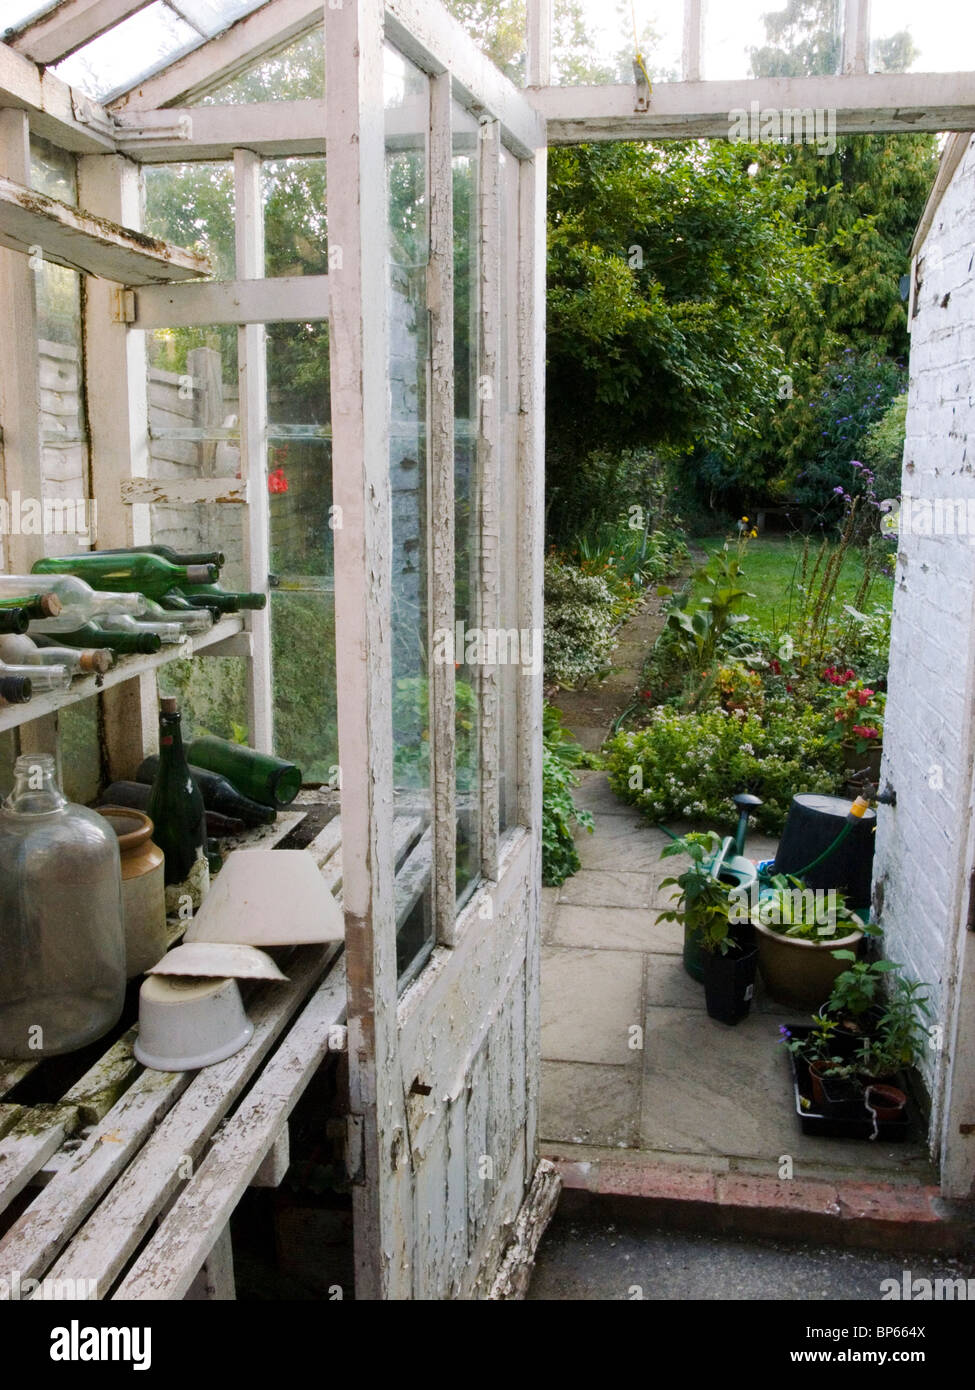 View into cottage garden from old, dilapidated greenhouse. - Stock Image